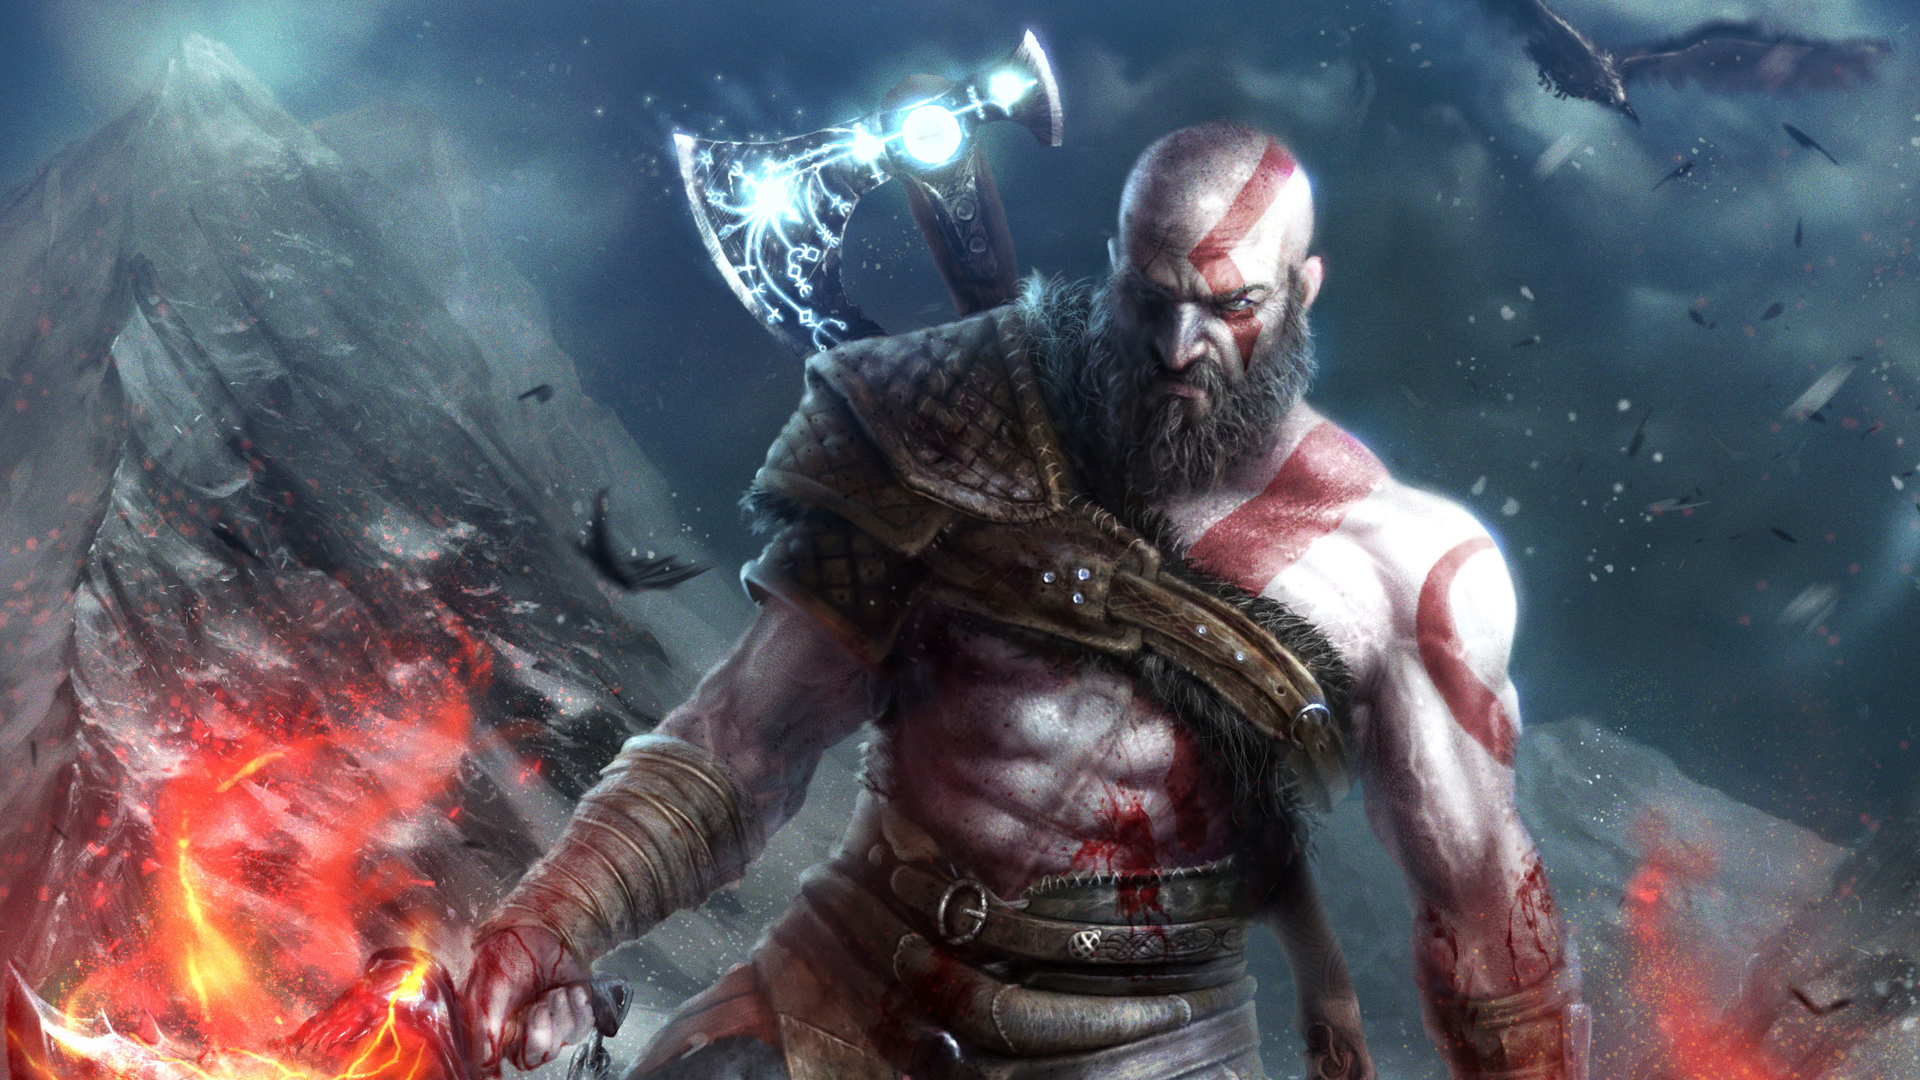 1920x1080 kratos in god of war laptop full hd 1080p hd 4k - 4k wallpaper of god ...